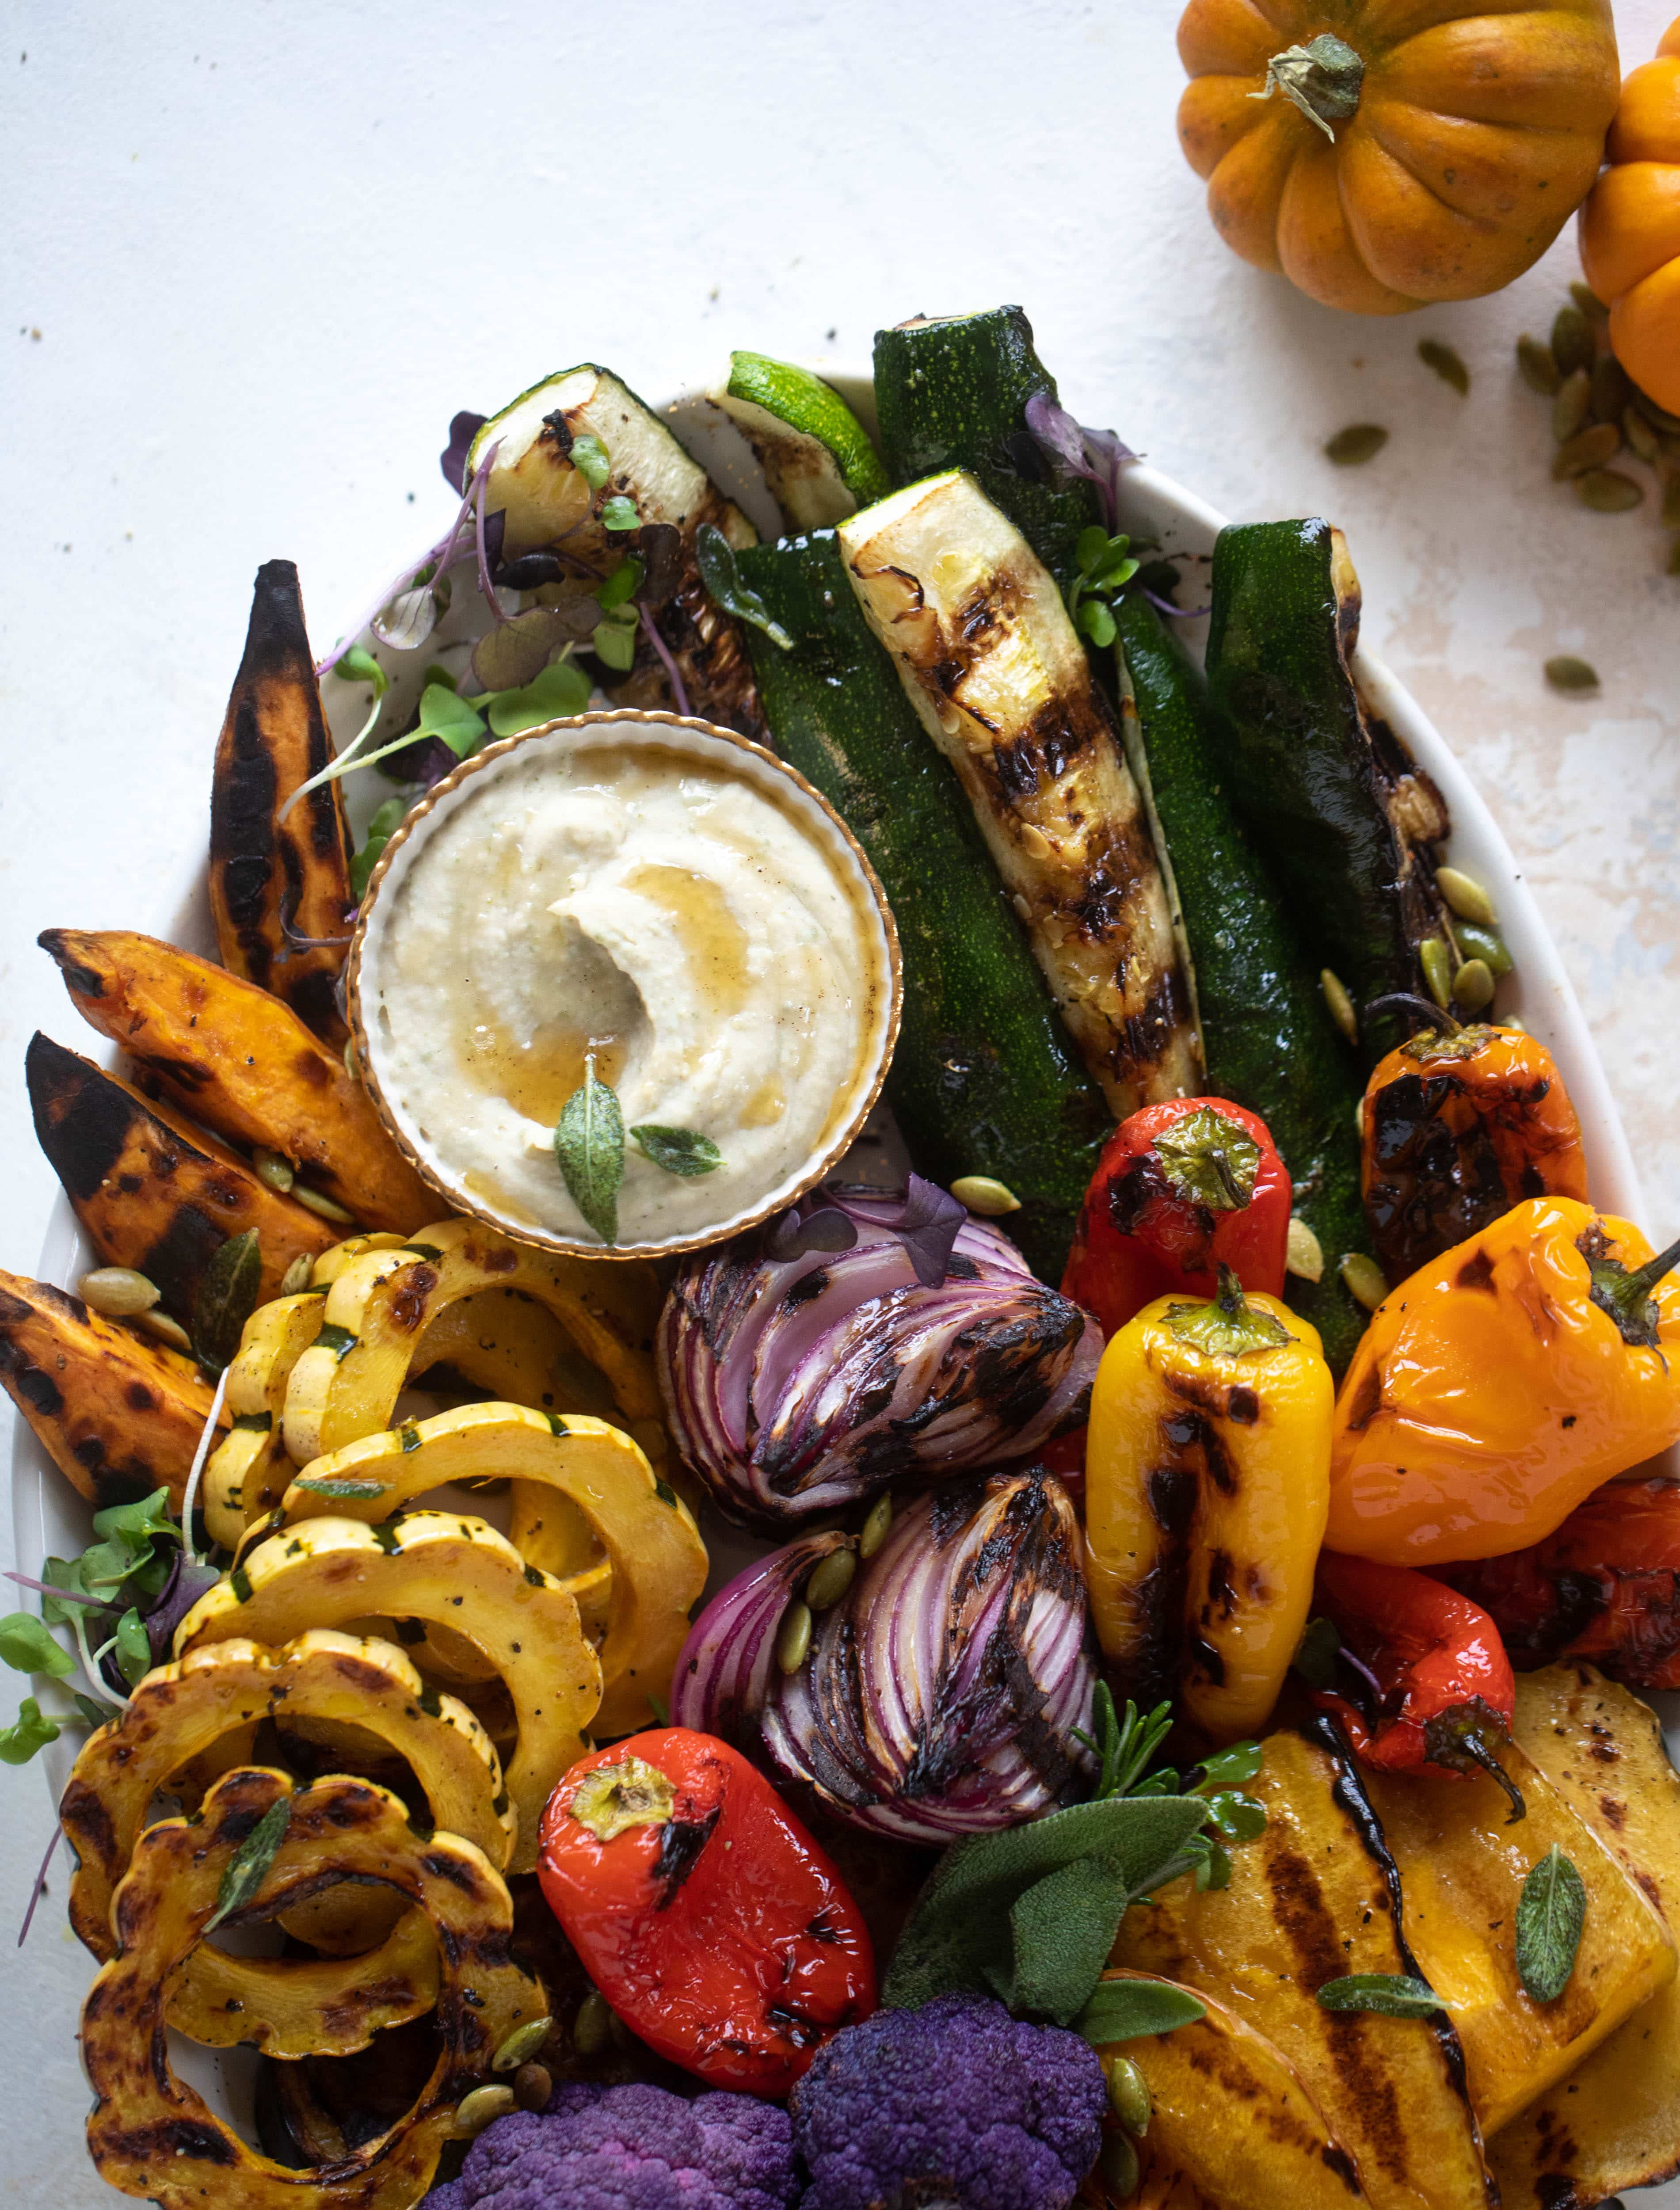 These grilled autumn vegetables make the best side dish or appetizer! Especially when served with the sage brown butter white bean dip. YUM.